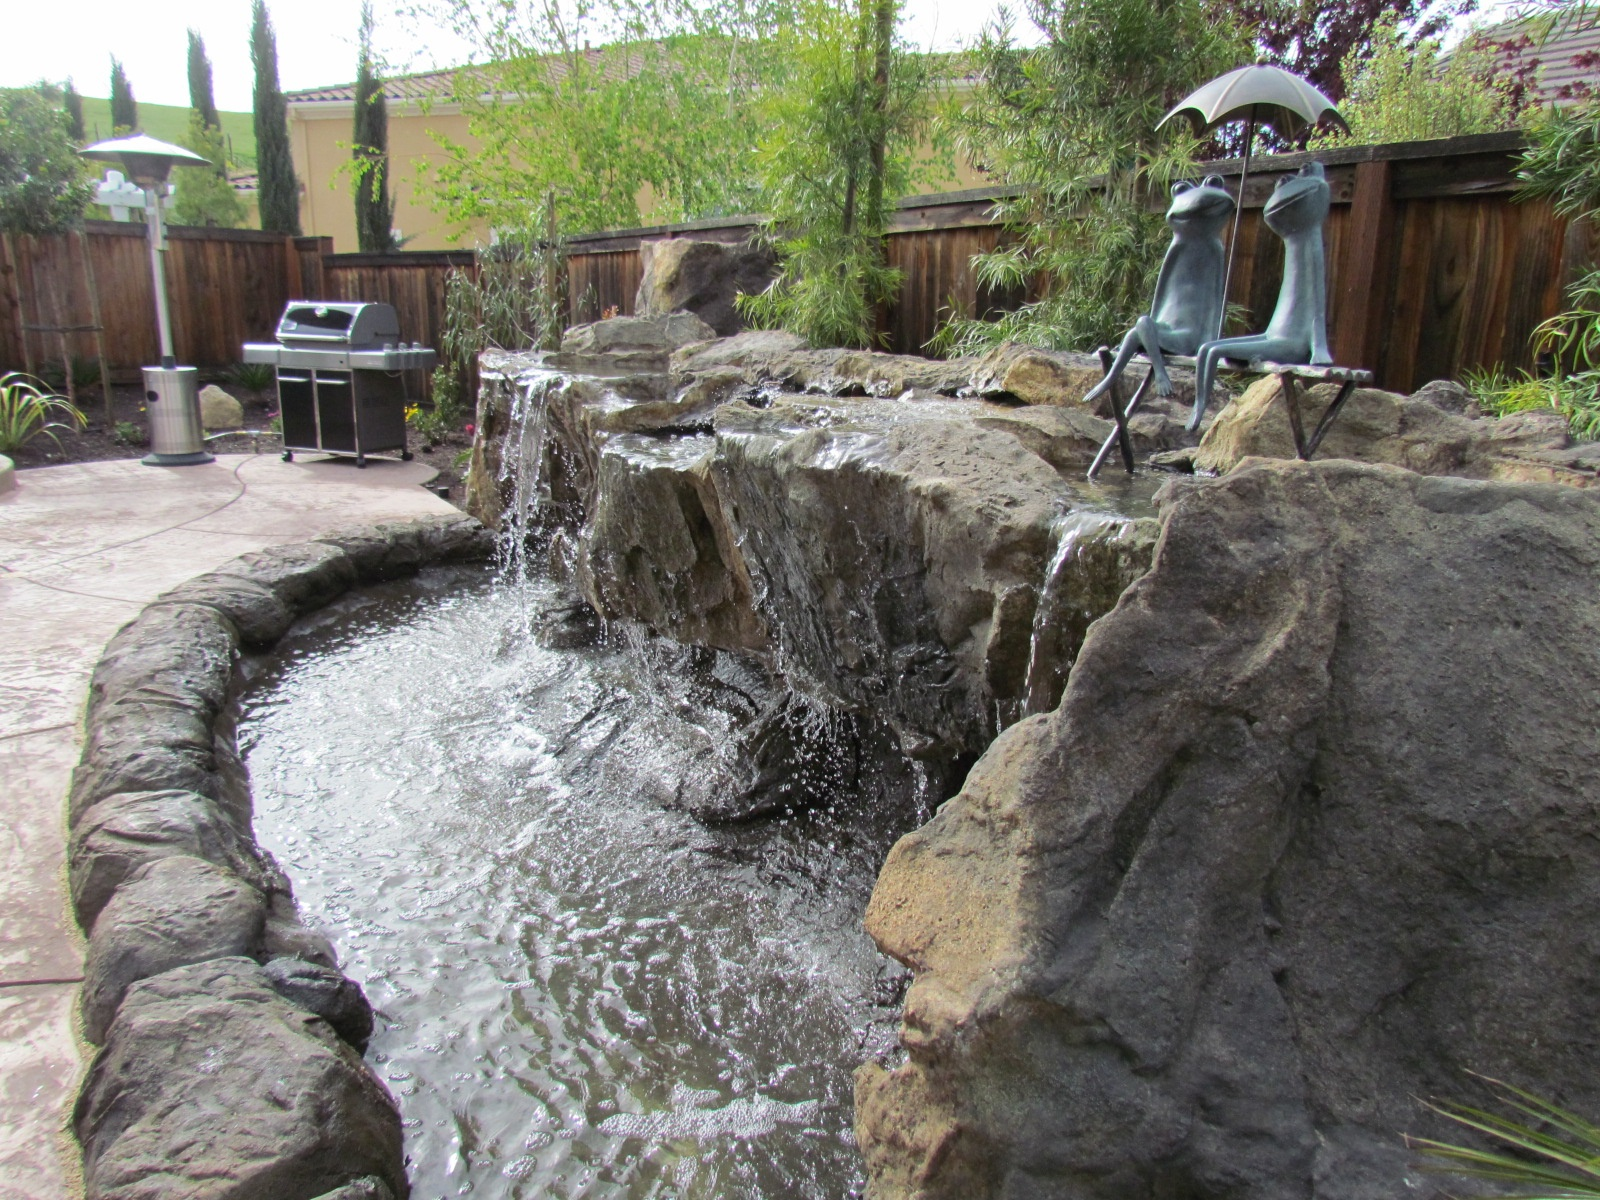 wondrous-patio-lowes-water-fountains-with-small-pond-for-backyard-water-features-also-patio-pavers-with-outdoor-lighting-and-outdoor-kitchen-decorating-ideas